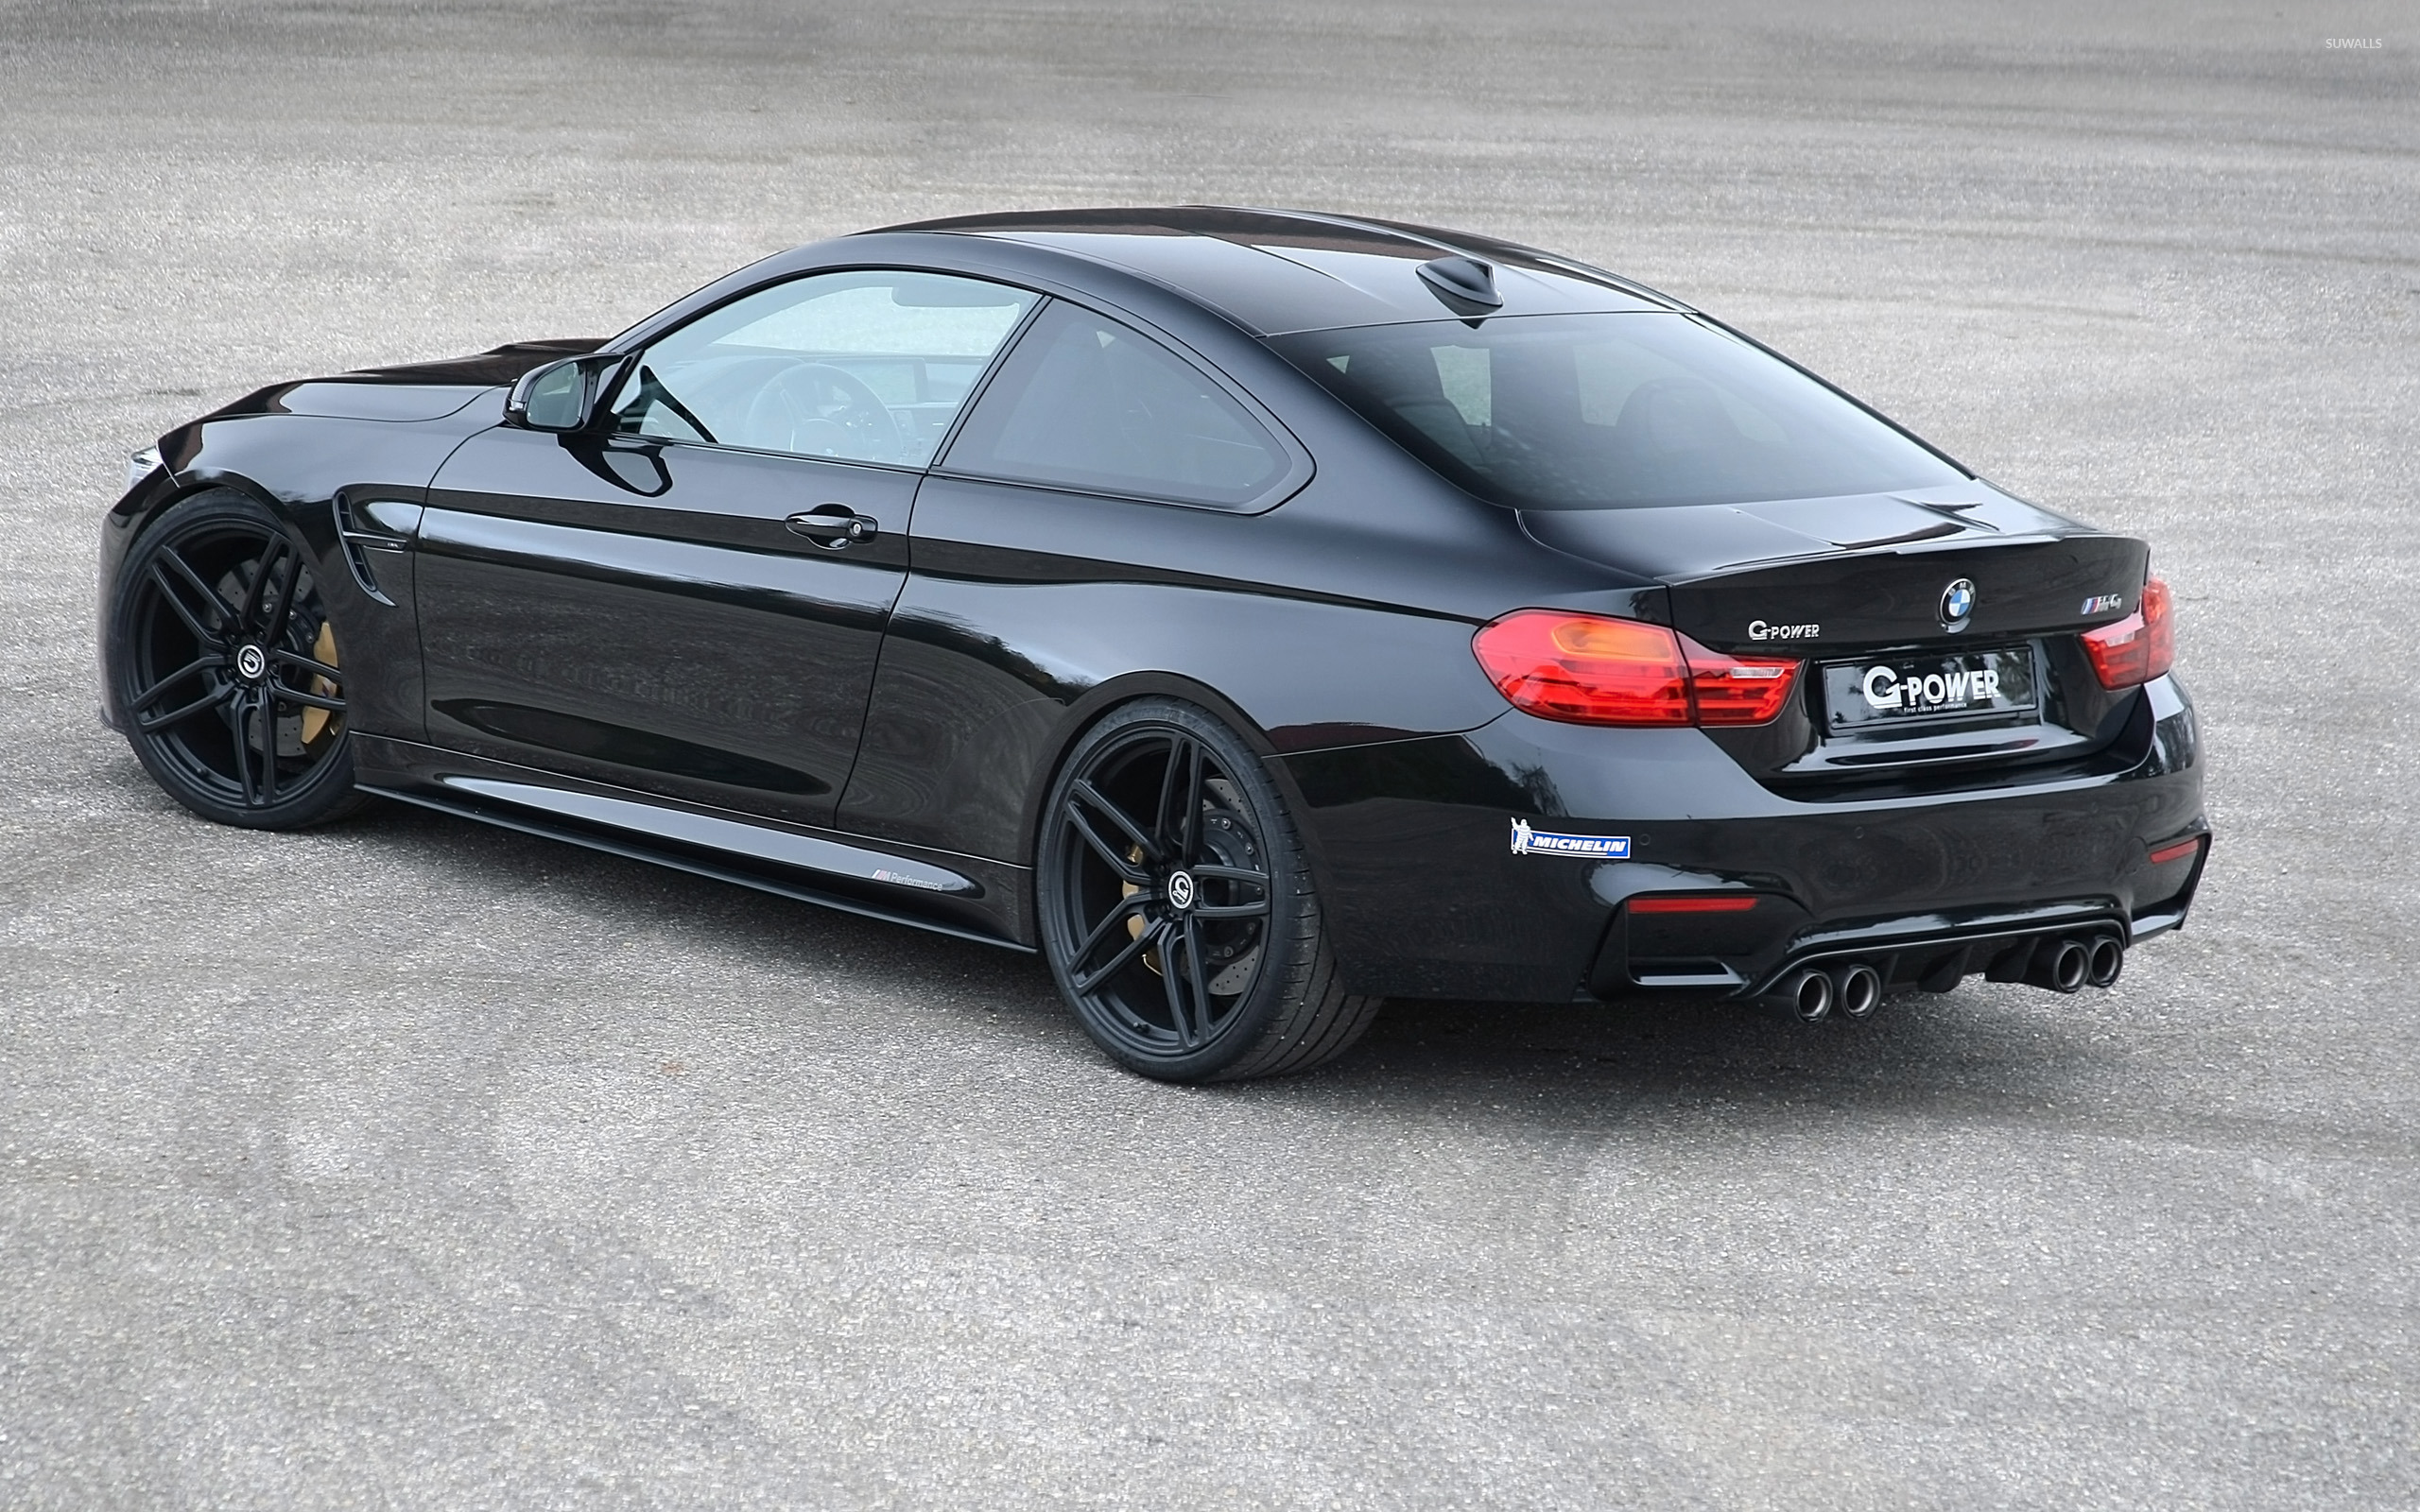 2014 G Power Bmw M4 Back Side View From Top Wallpaper Car